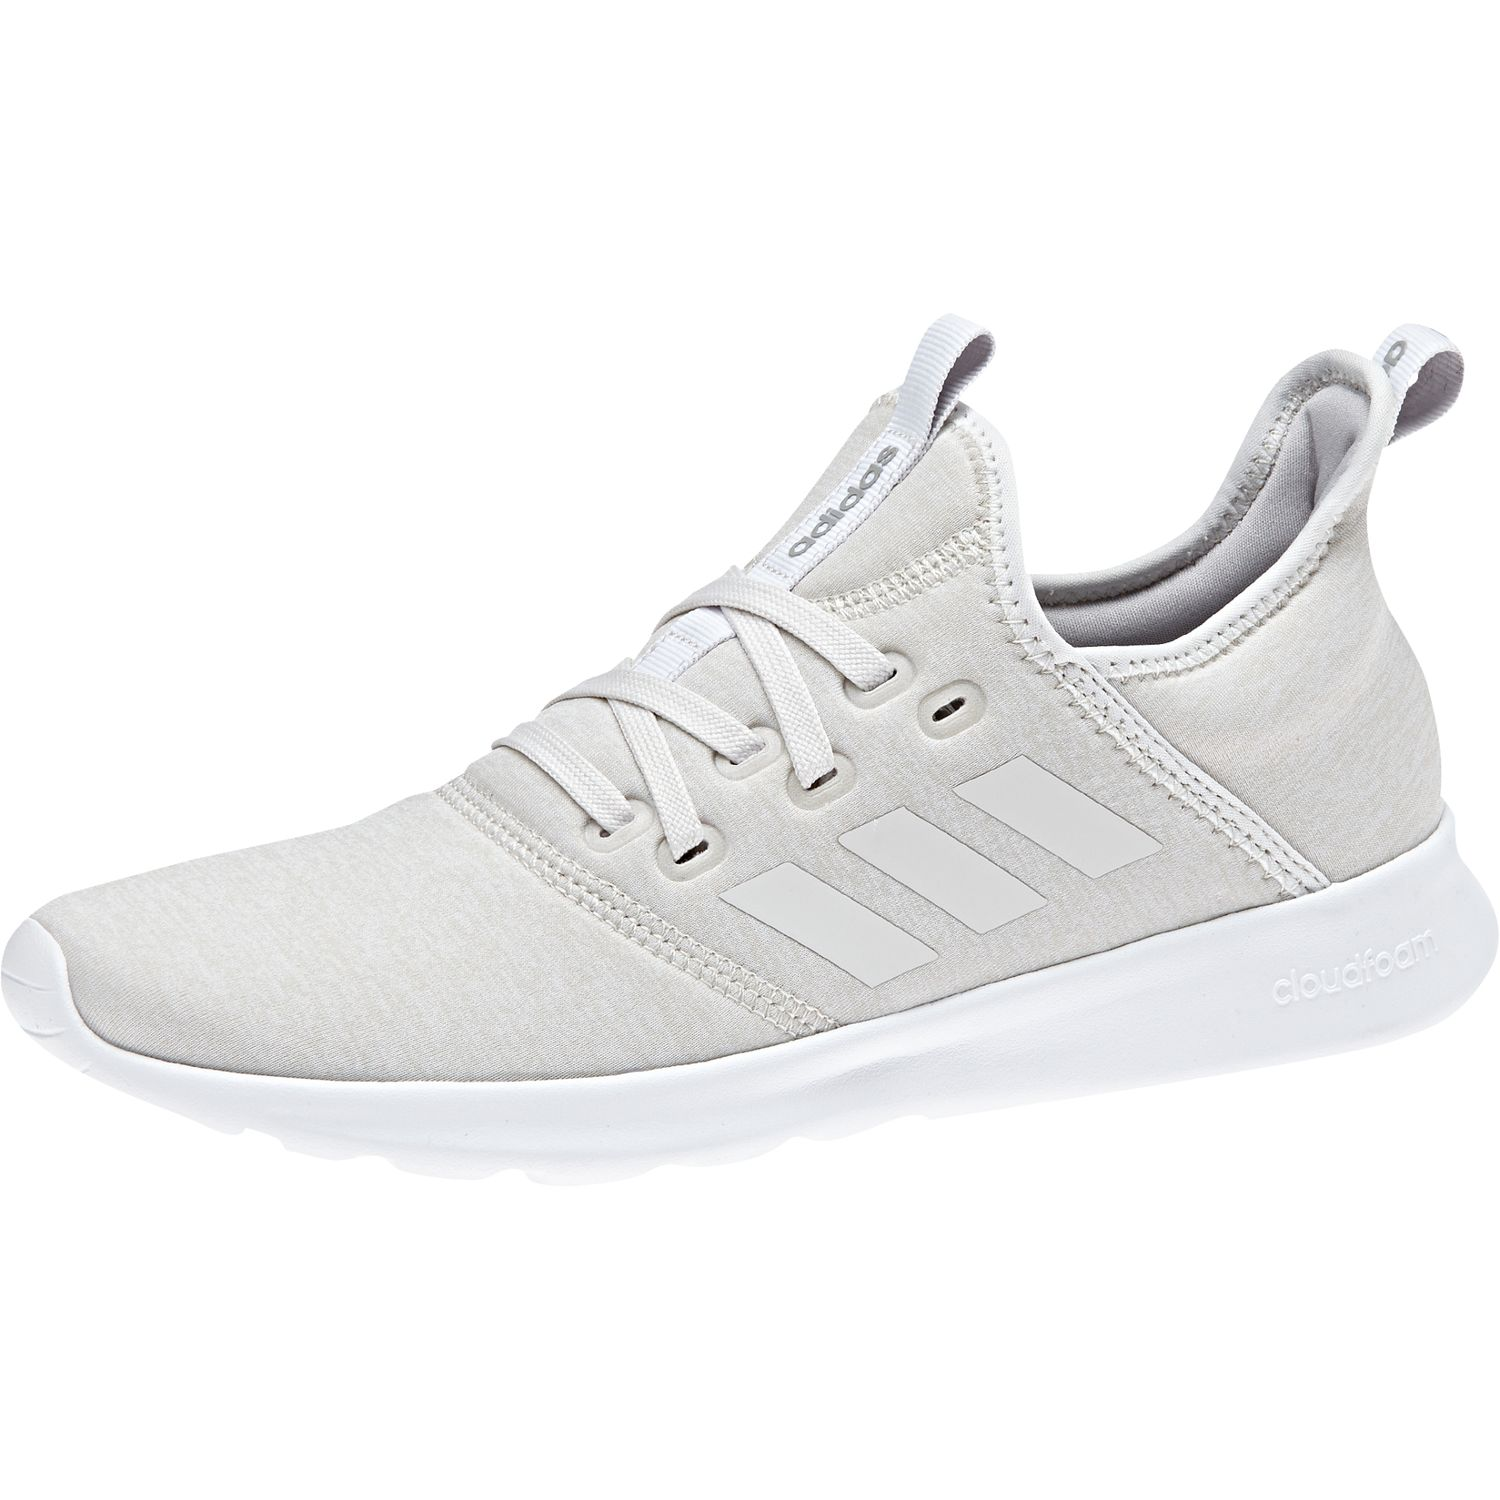 ADIDAS DONNA Cloudfoam Pure W Sneakers Scarpe fitness db0705